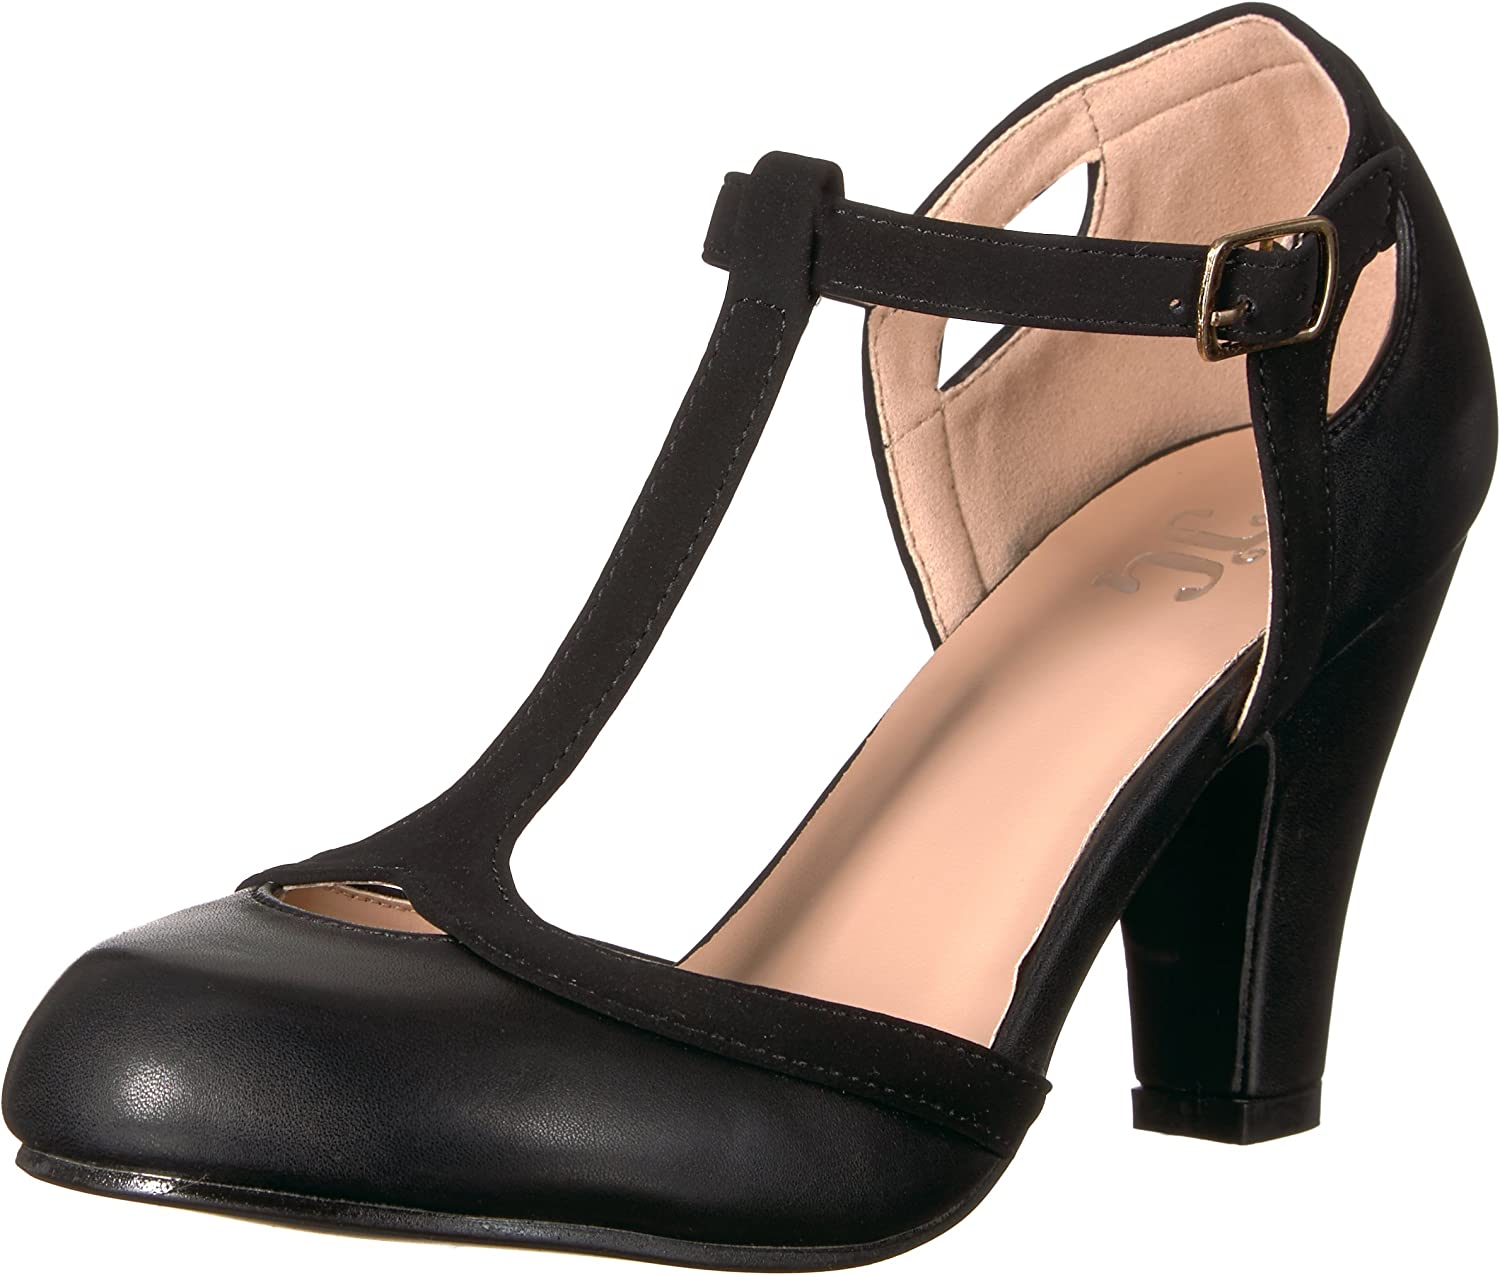 Year-end annual account Easy-to-use Brinley Co Women's Pump Oria